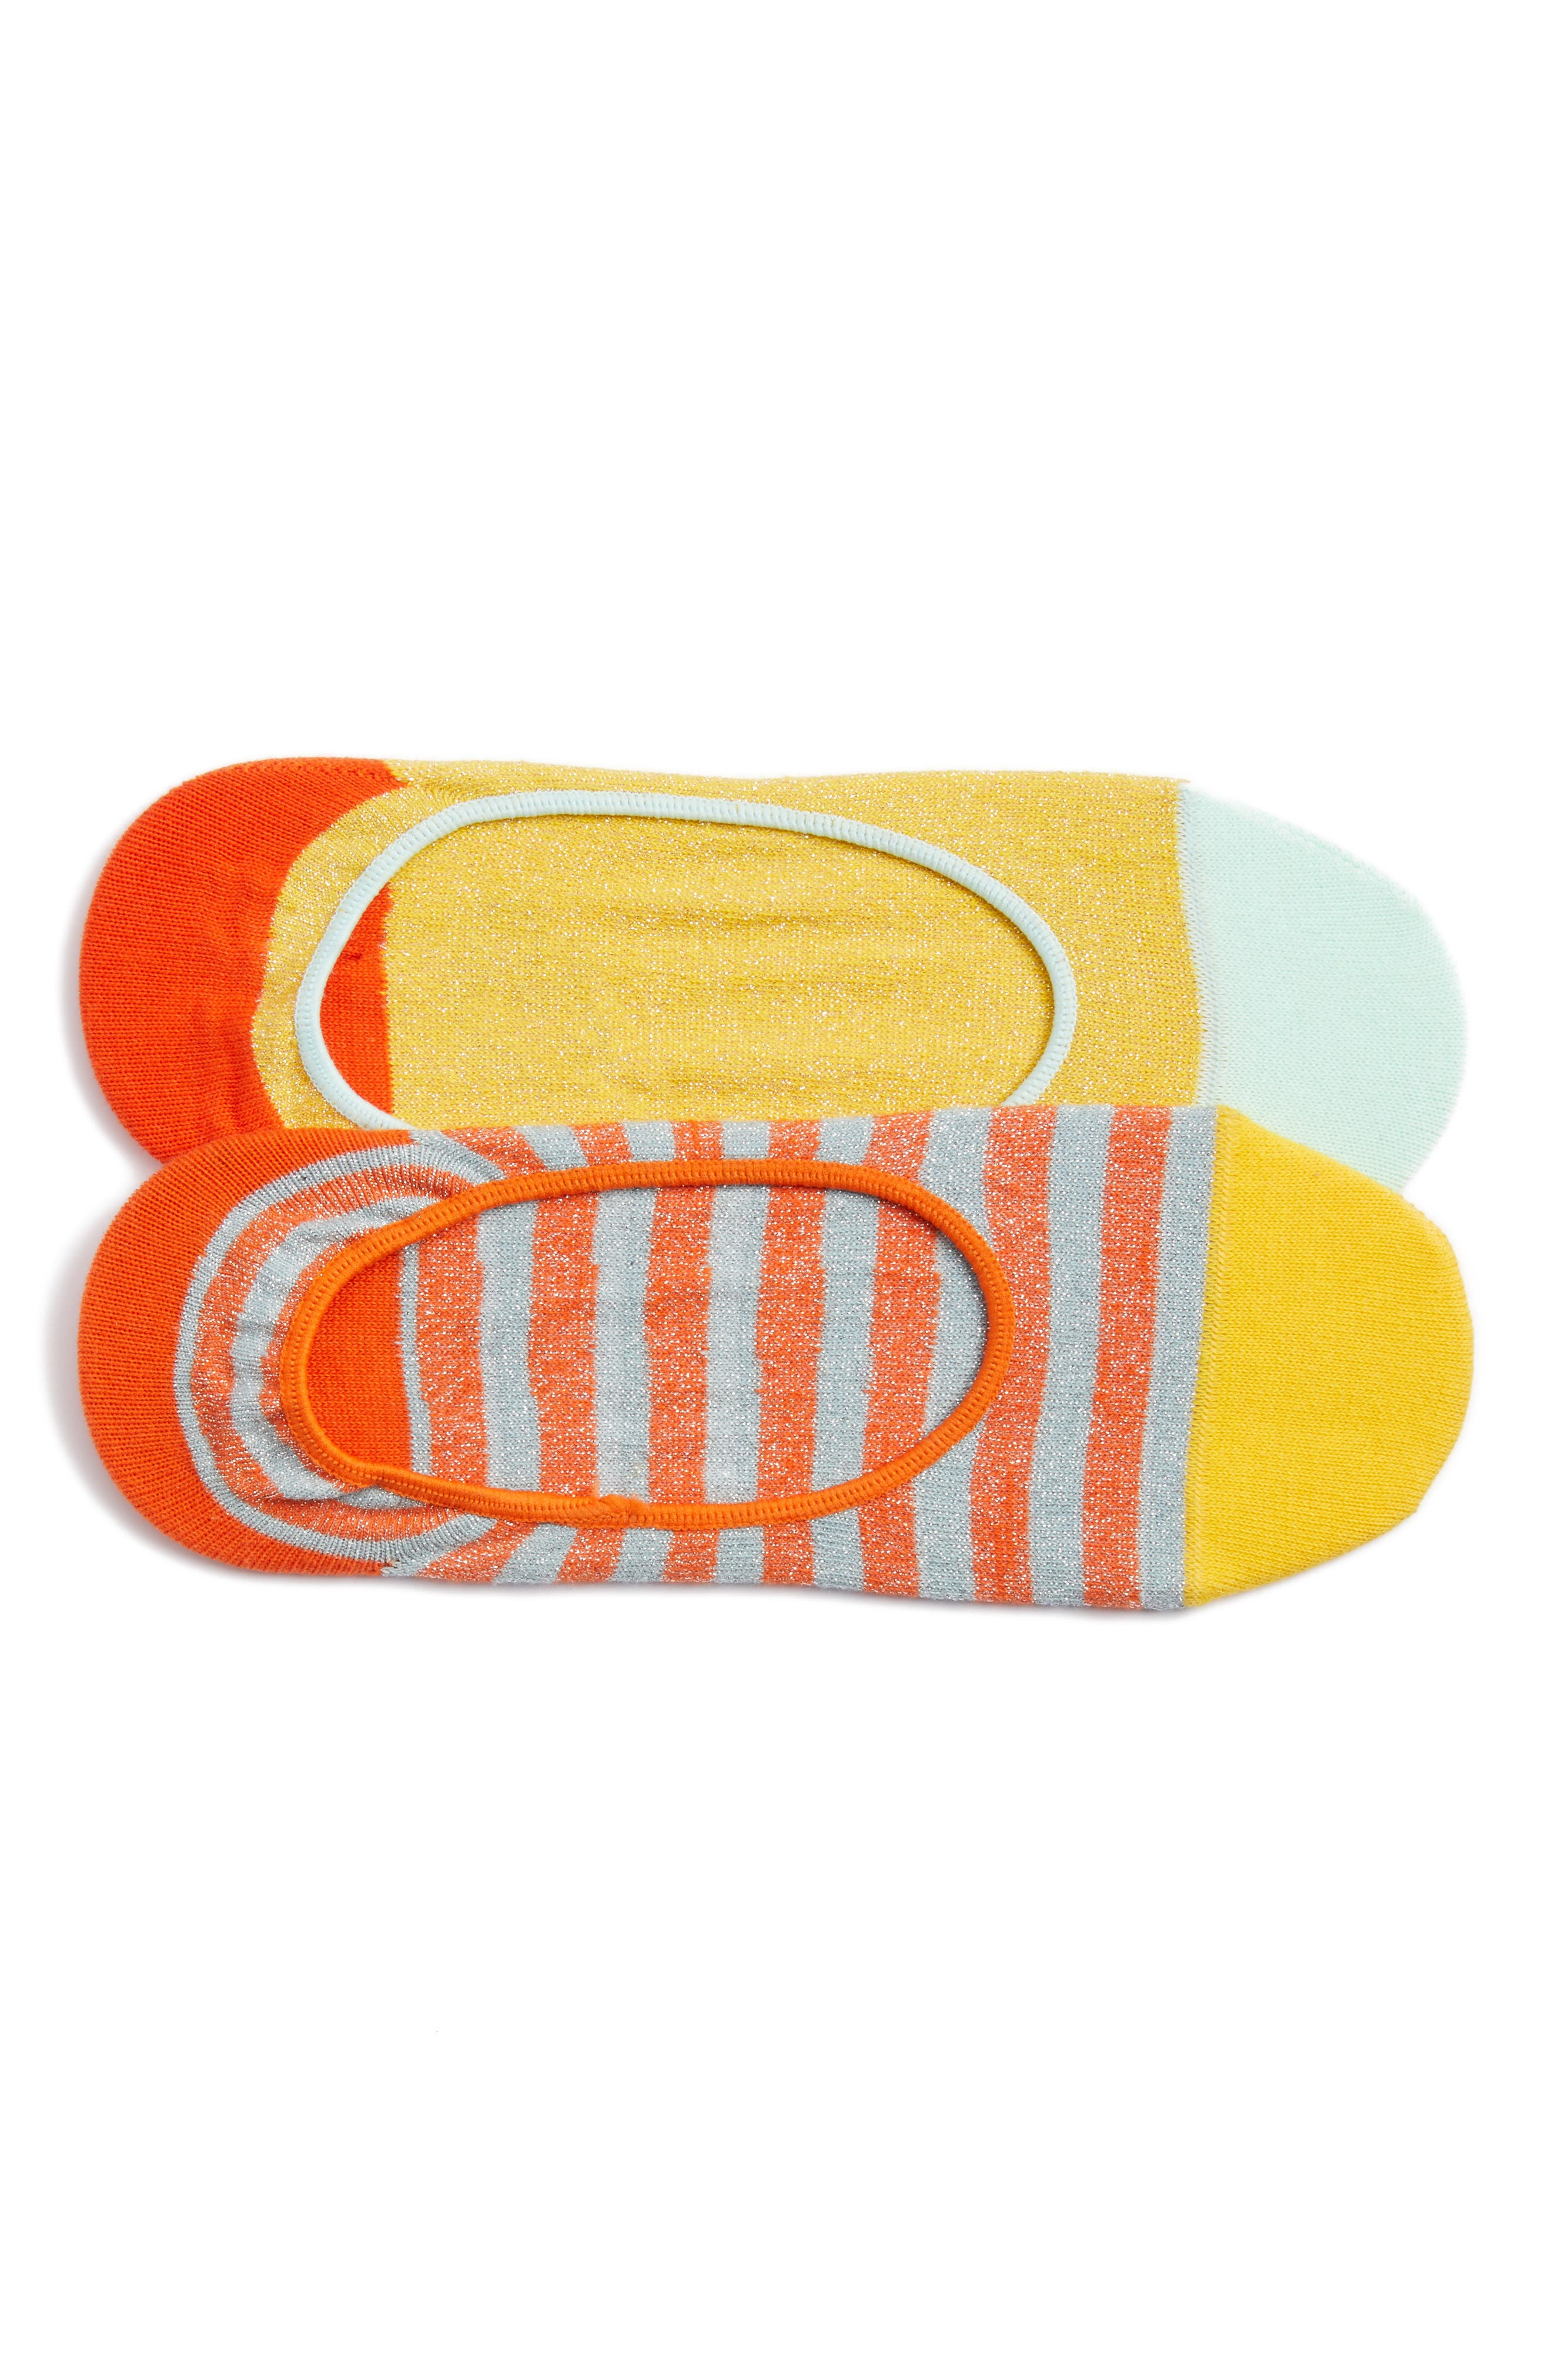 2-Pack Claudia No-Show Socks,                             Main thumbnail 1, color,                             Orange